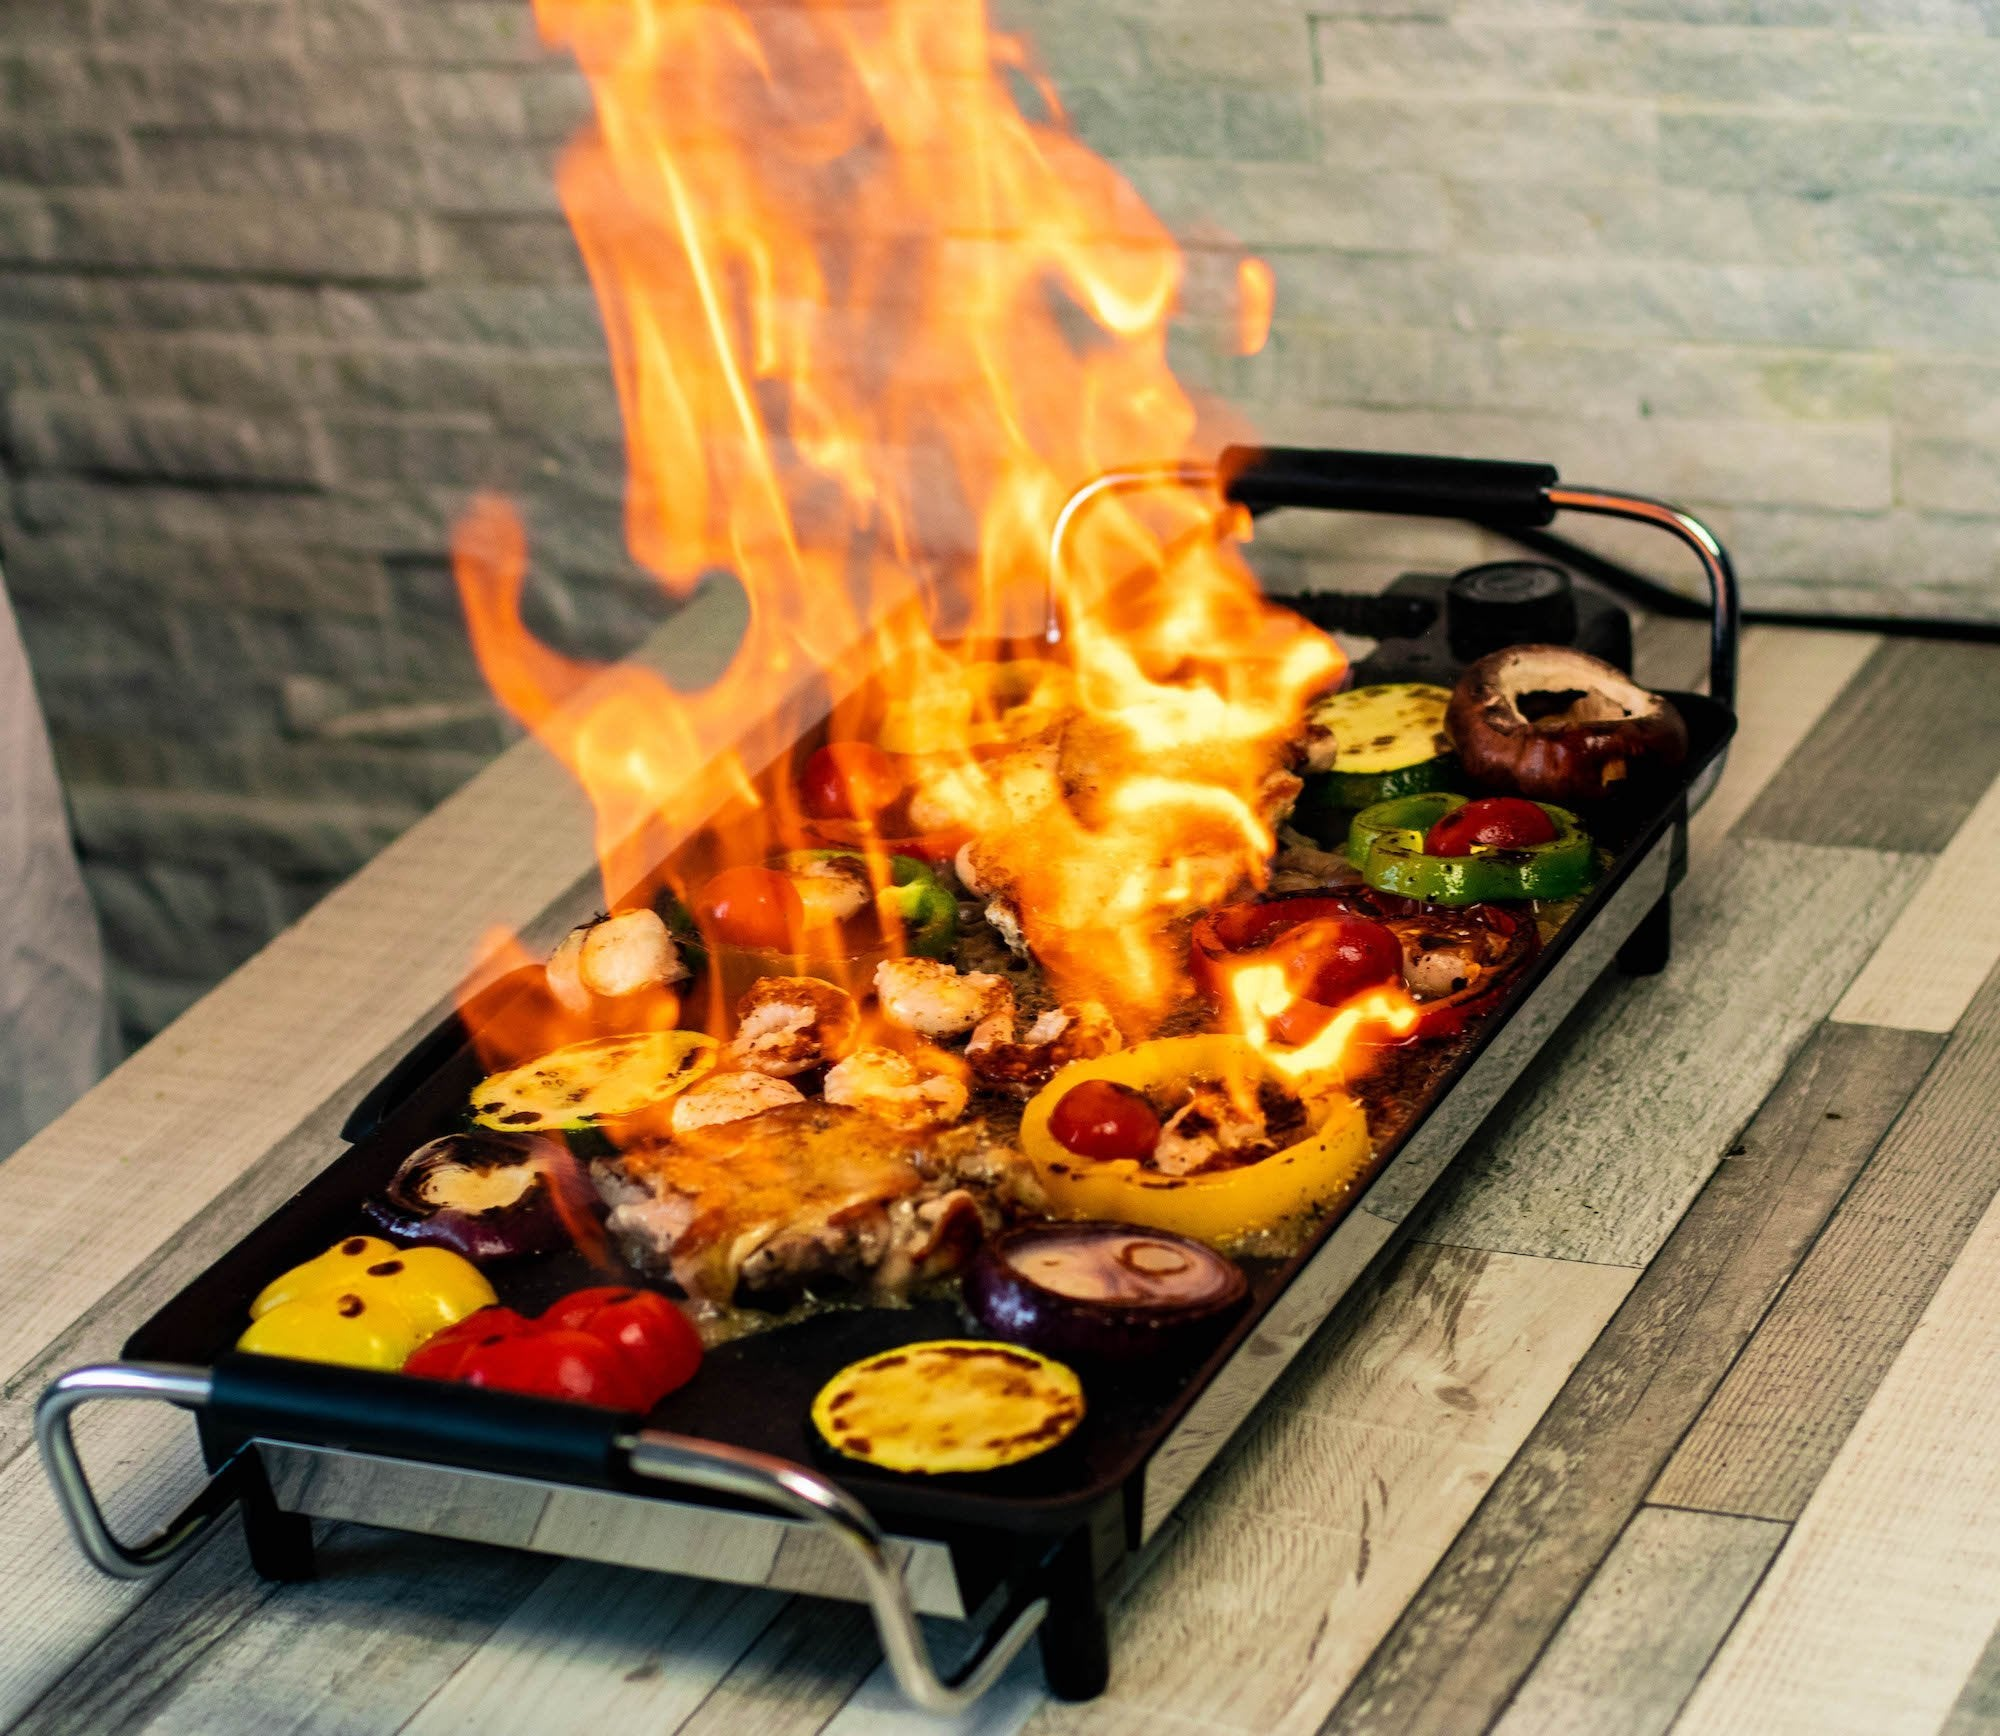 The Teppantastic Electric Teppanyaki Grill